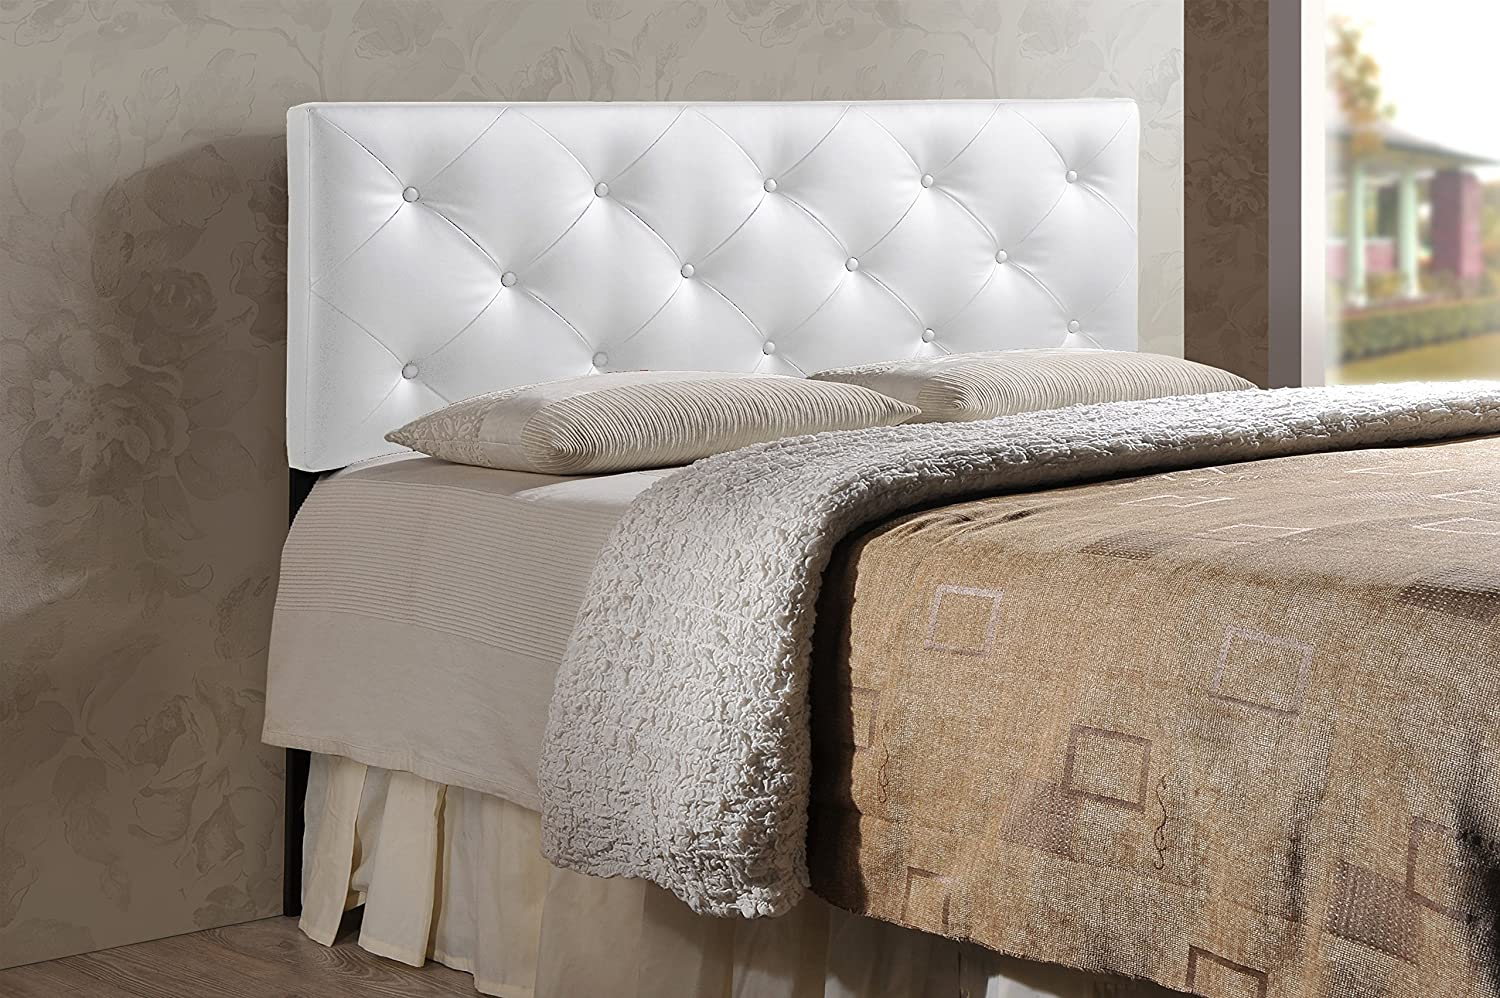 size architecture pretentious clearance excellent bed design headboard headboards faux king mattress idea white exclusive queen bedroom discount leather upholstered regarding